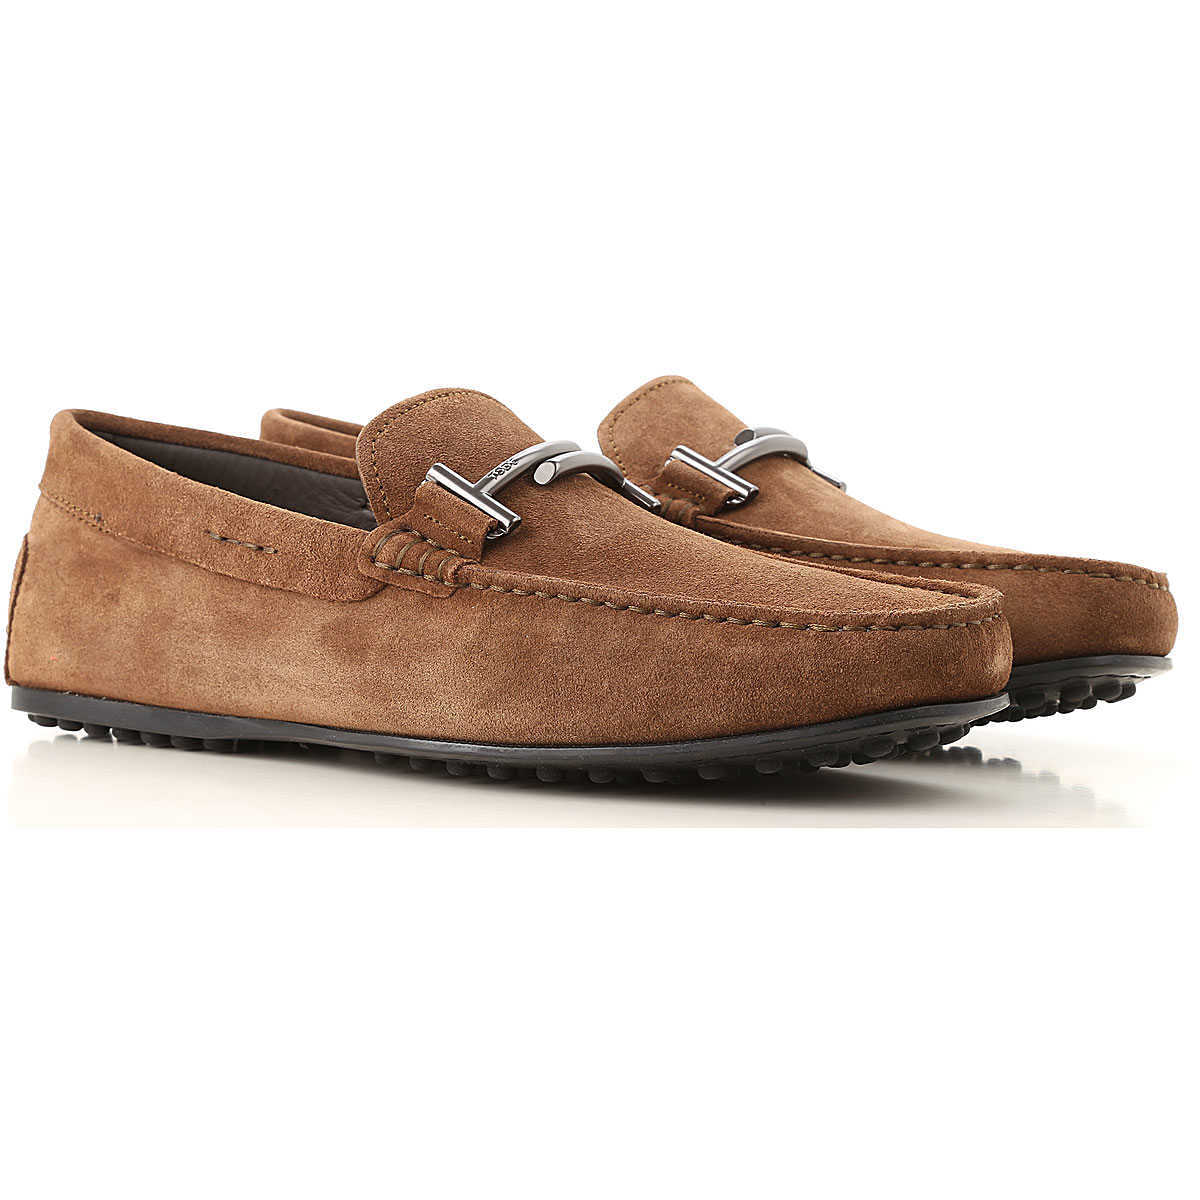 Tods Loafers for Men On Sale Beaver Brown DK - GOOFASH - Mens LOAFERS